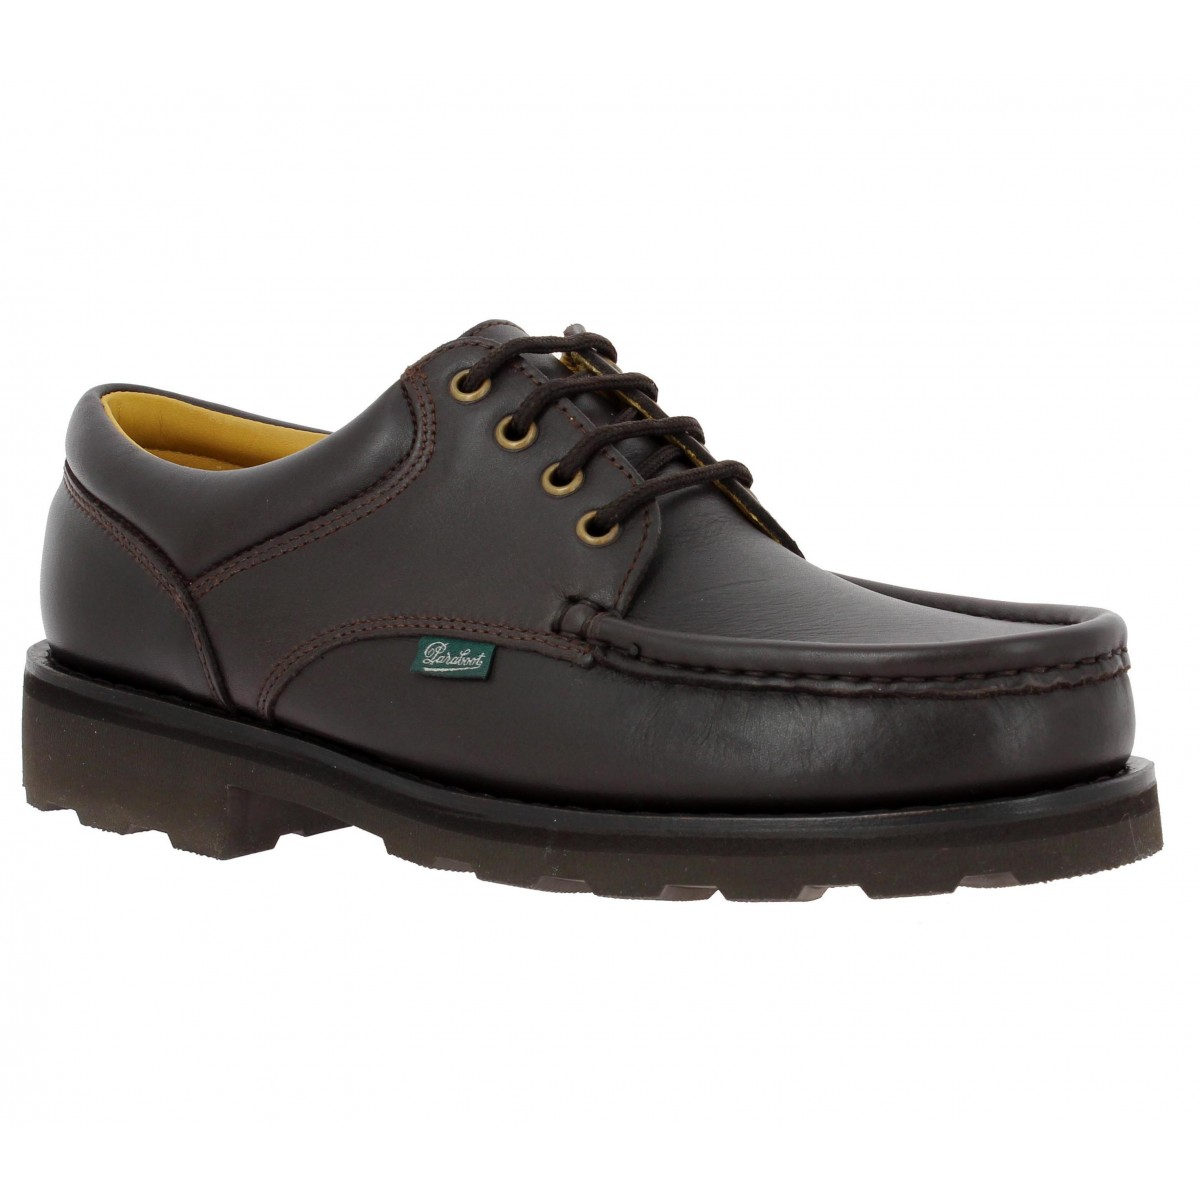 Paraboot Thiers Homme Marron Fanny Chaussures